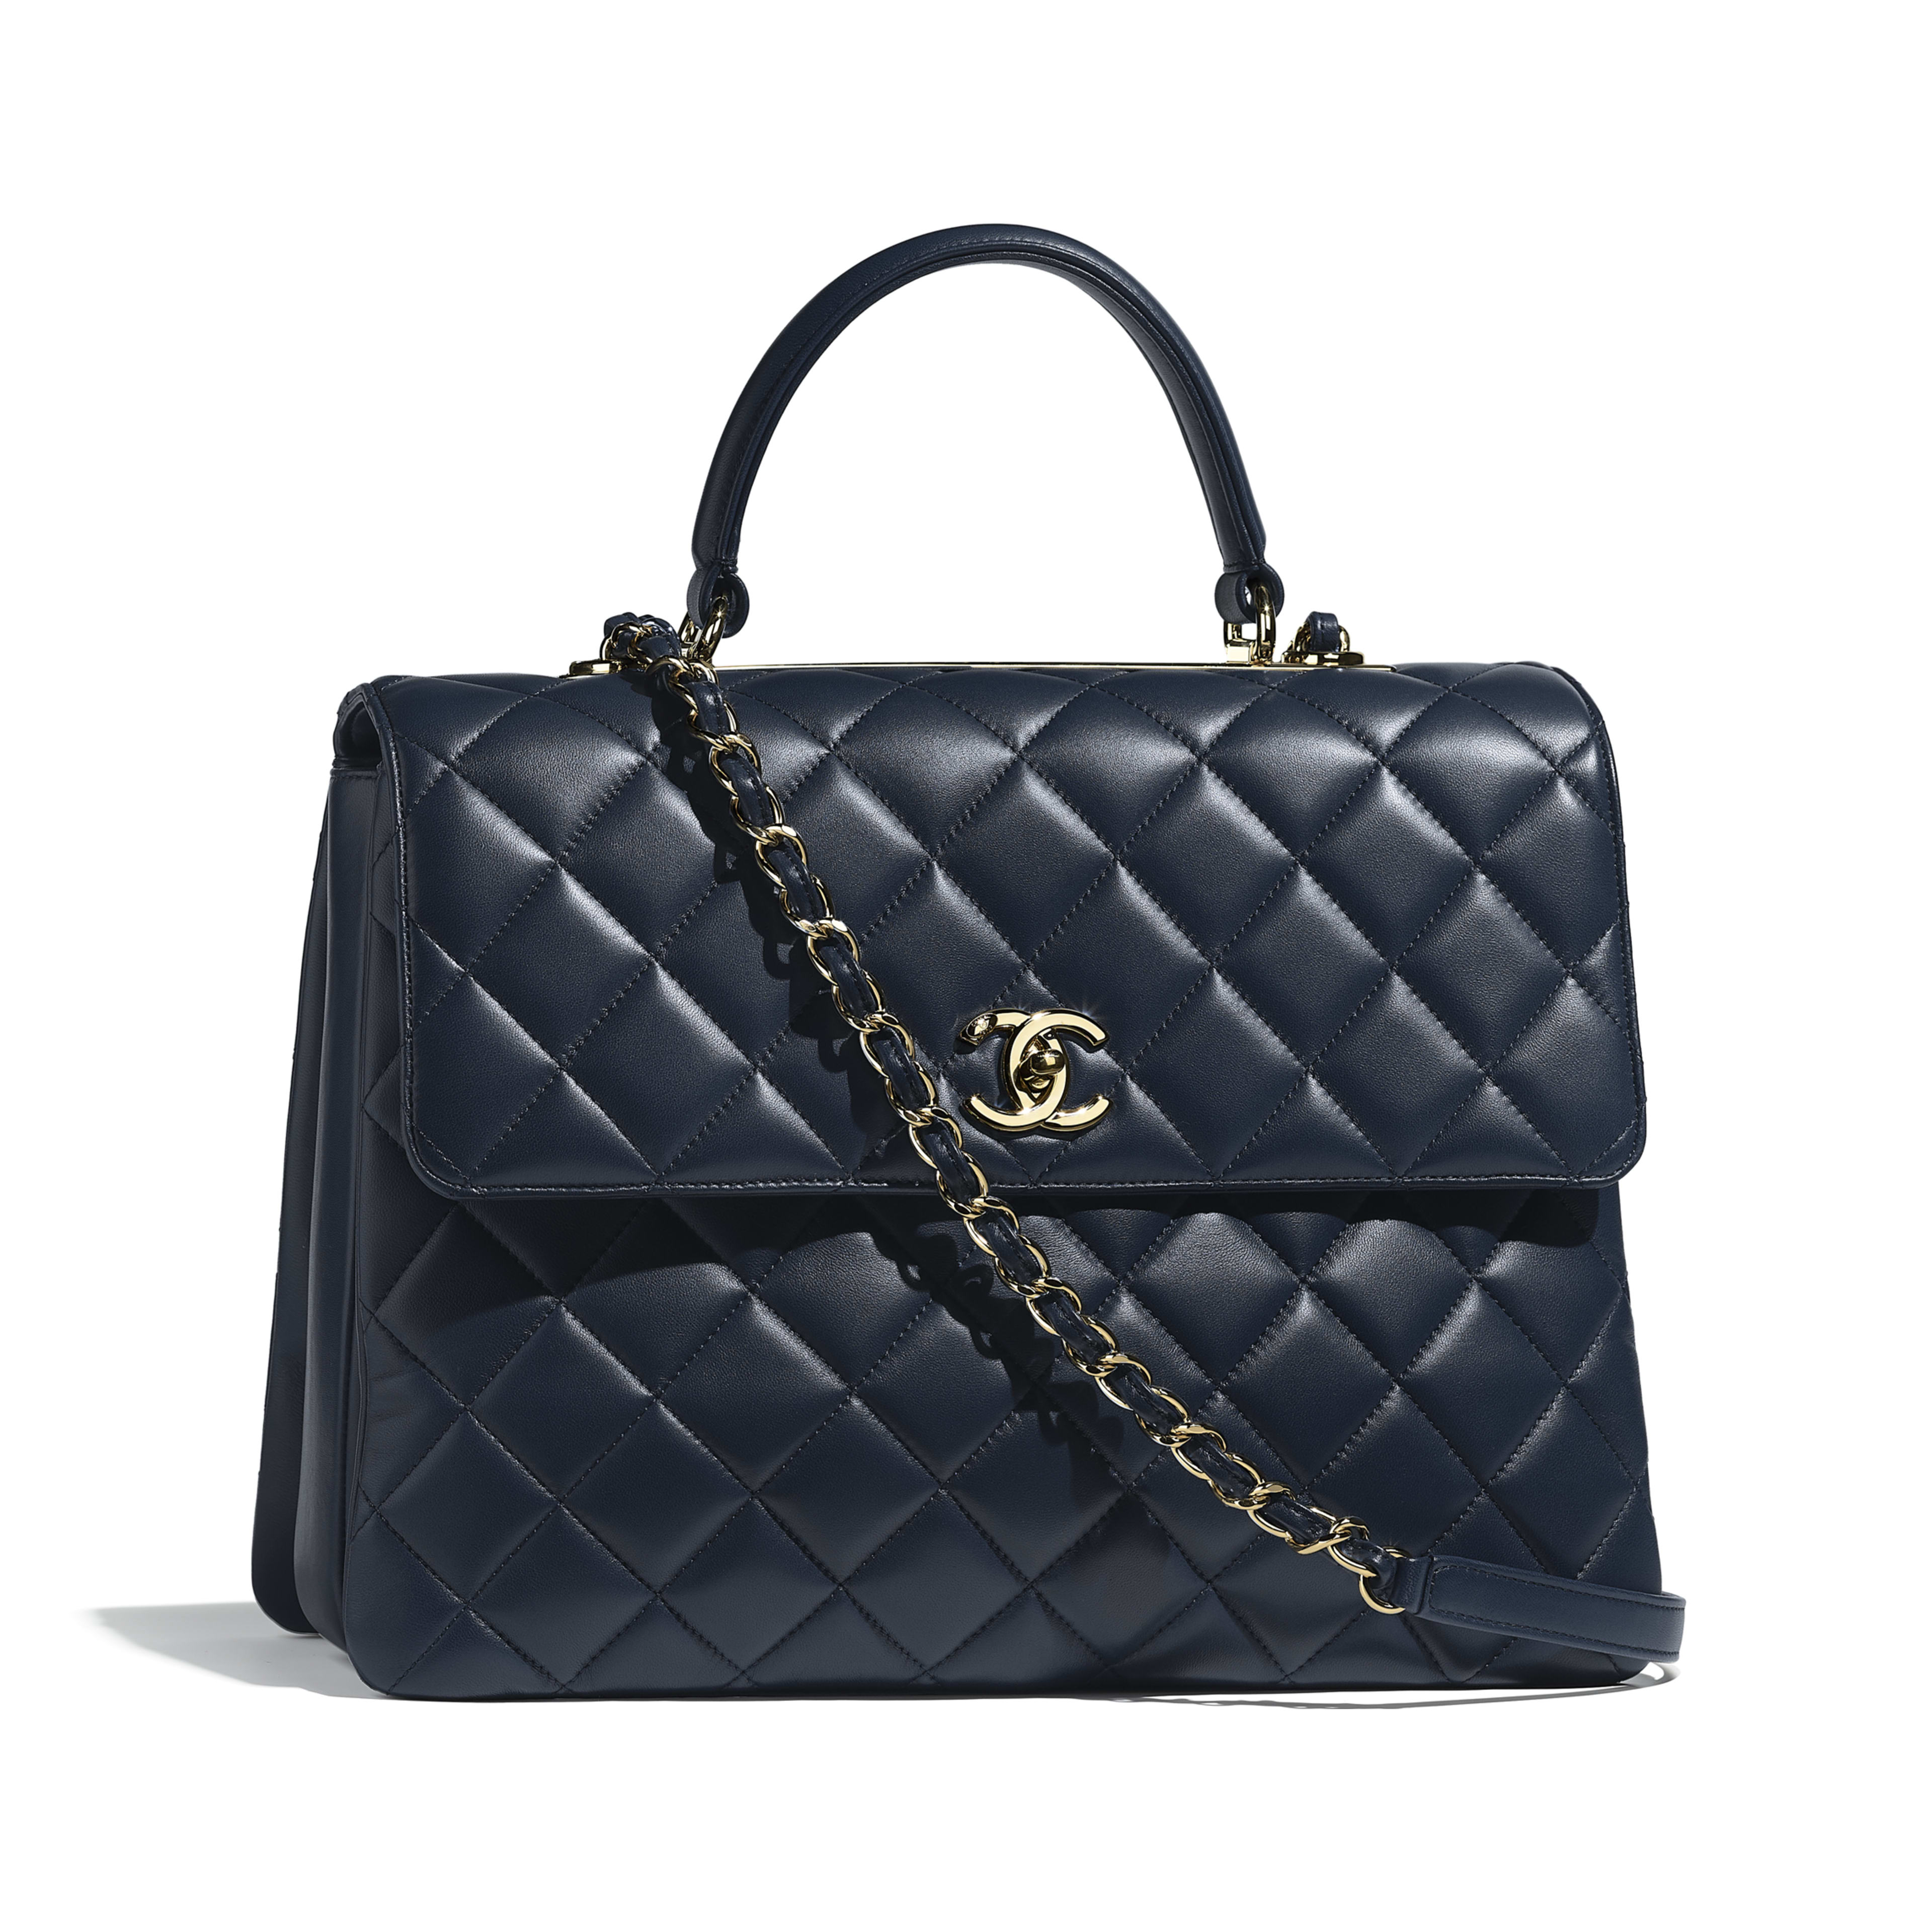 87f25dcb21a6 Lambskin Gold Tone Metal Navy Blue Large Flap Bag With Top Handle